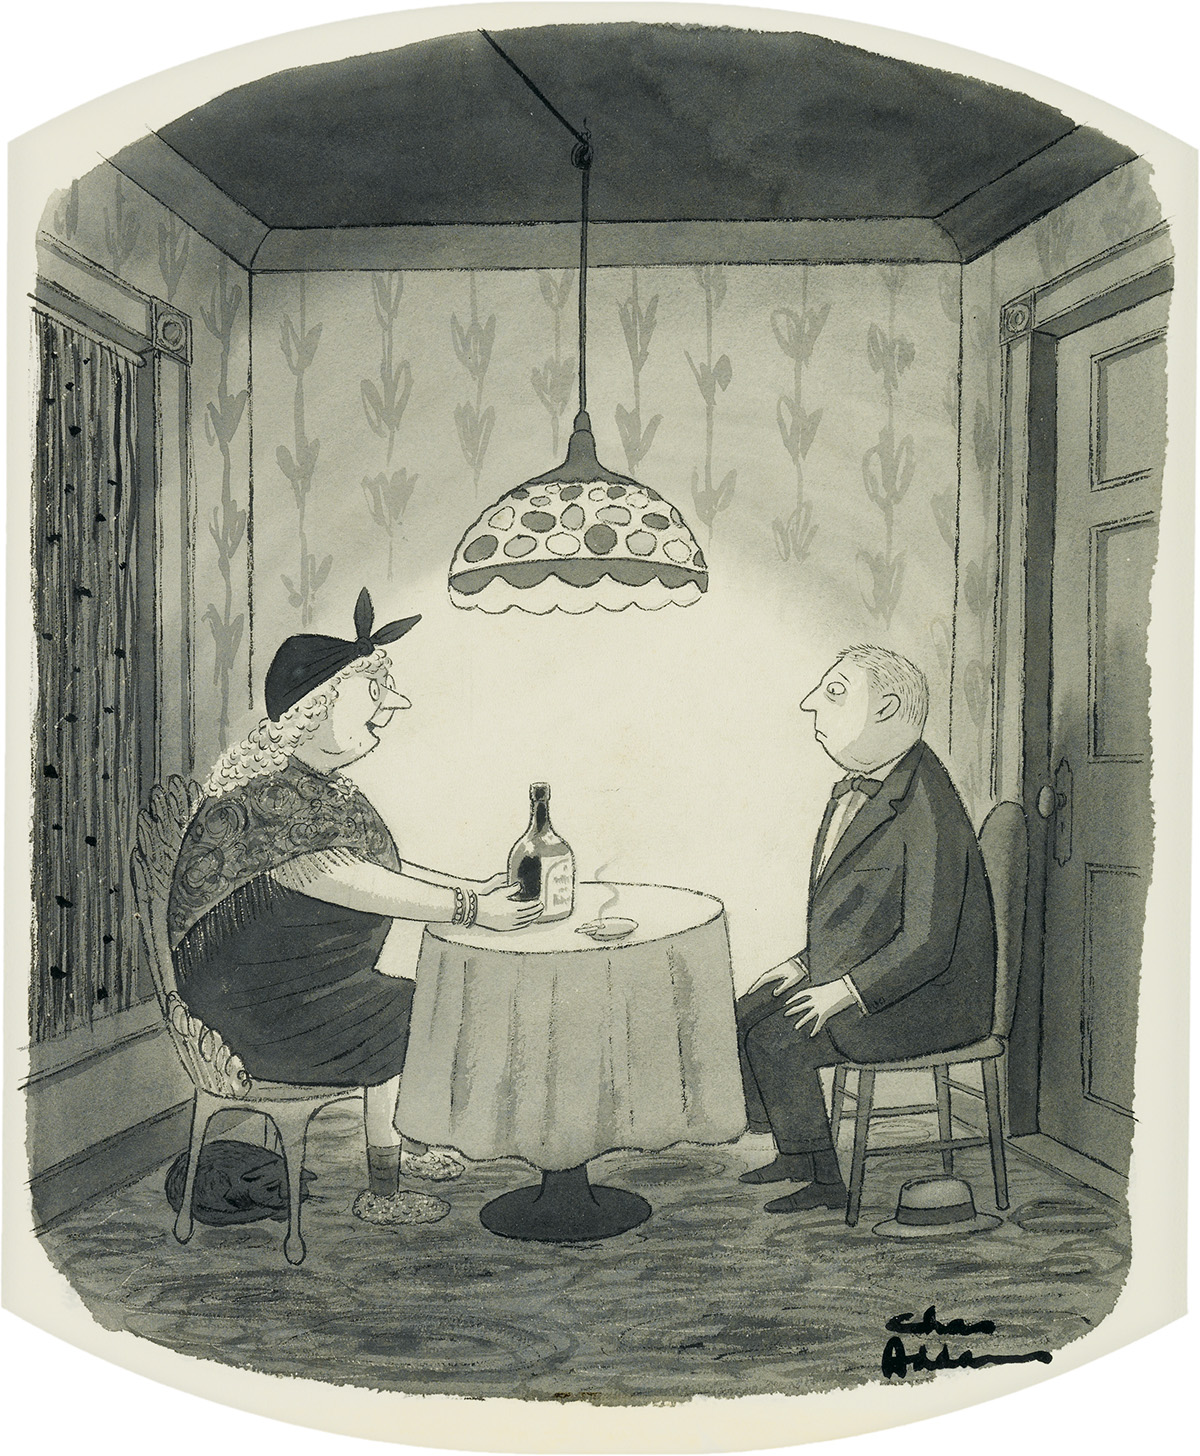 ADVERTISING LIQUOR CHARLES ADDAMS. I always use a Chivas Regal bottle. It conjures up a much better class spirit.